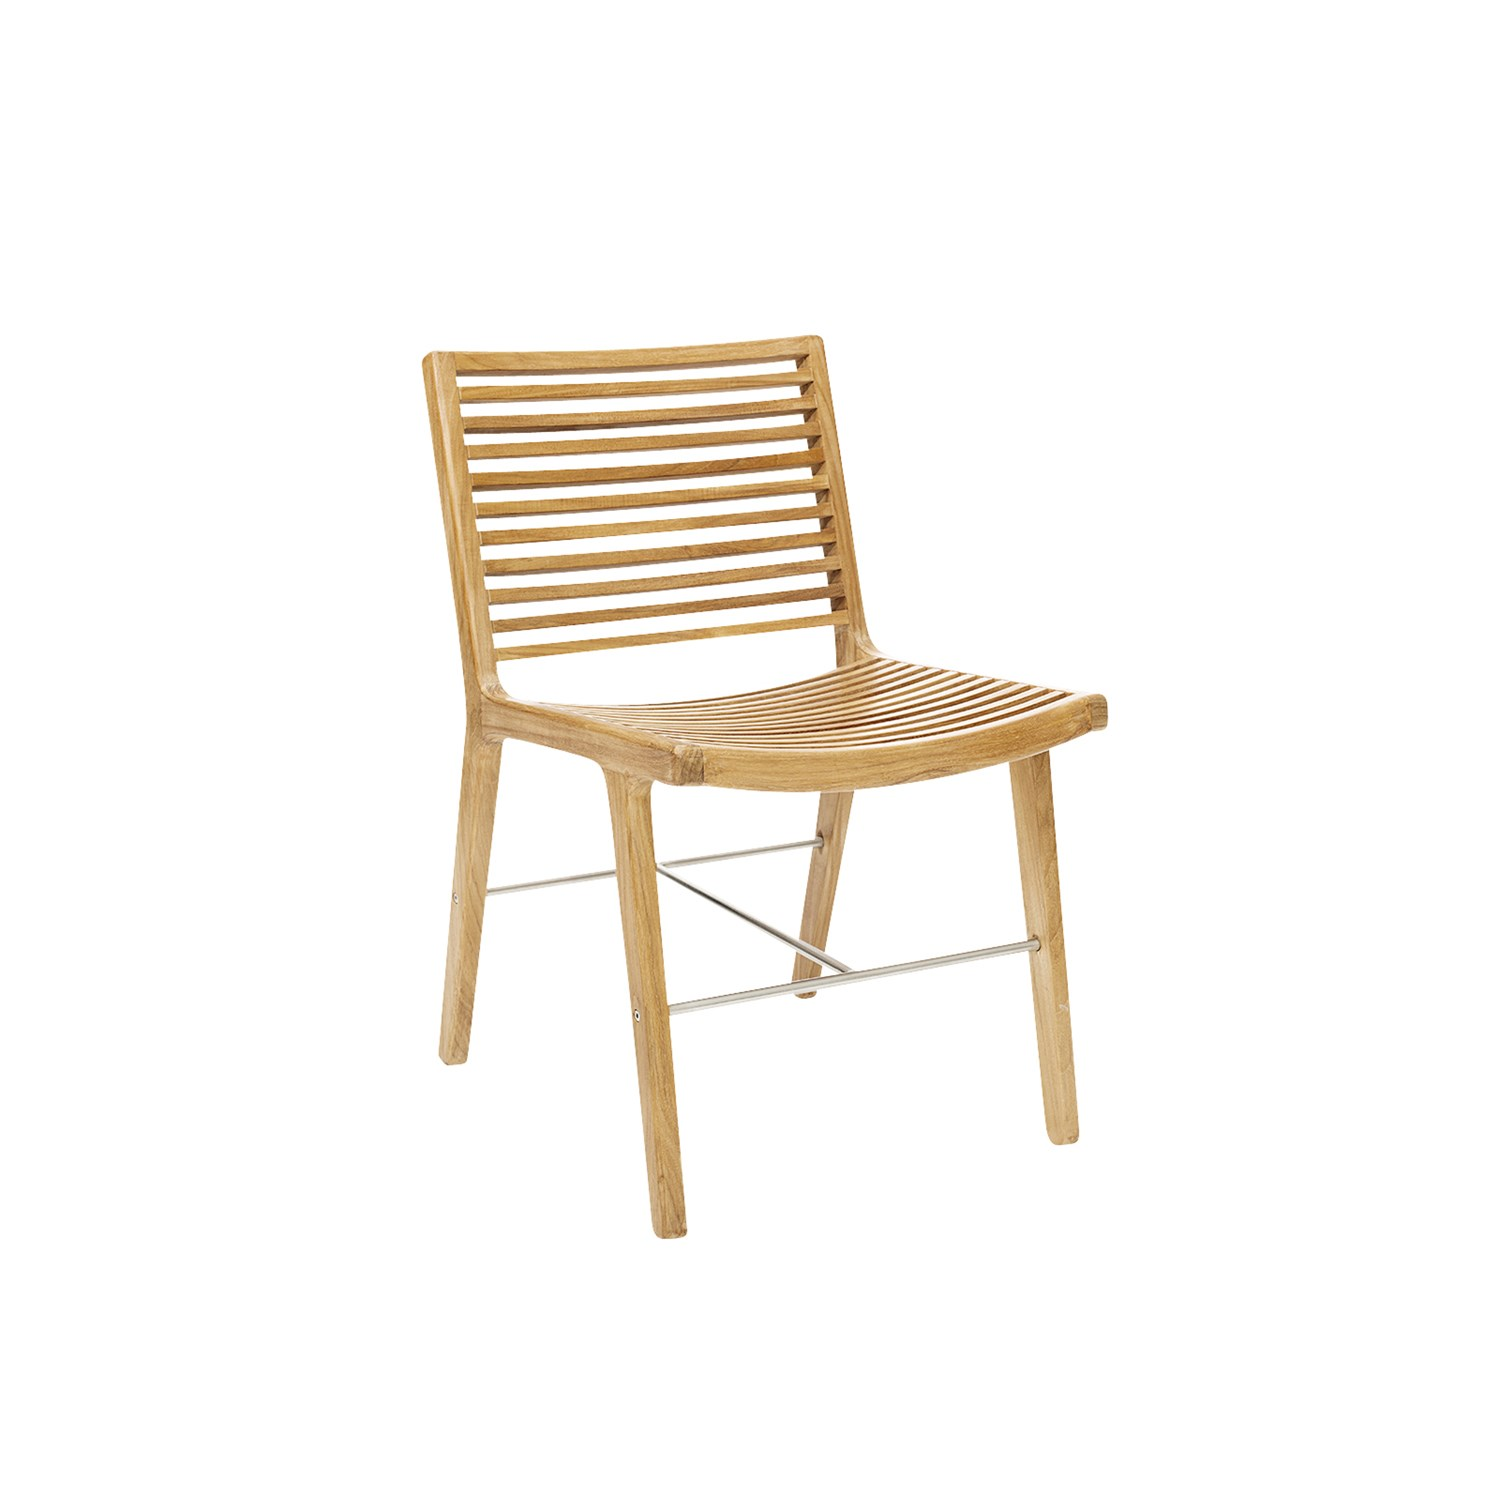 Scanteak - RIB, Dining Chair